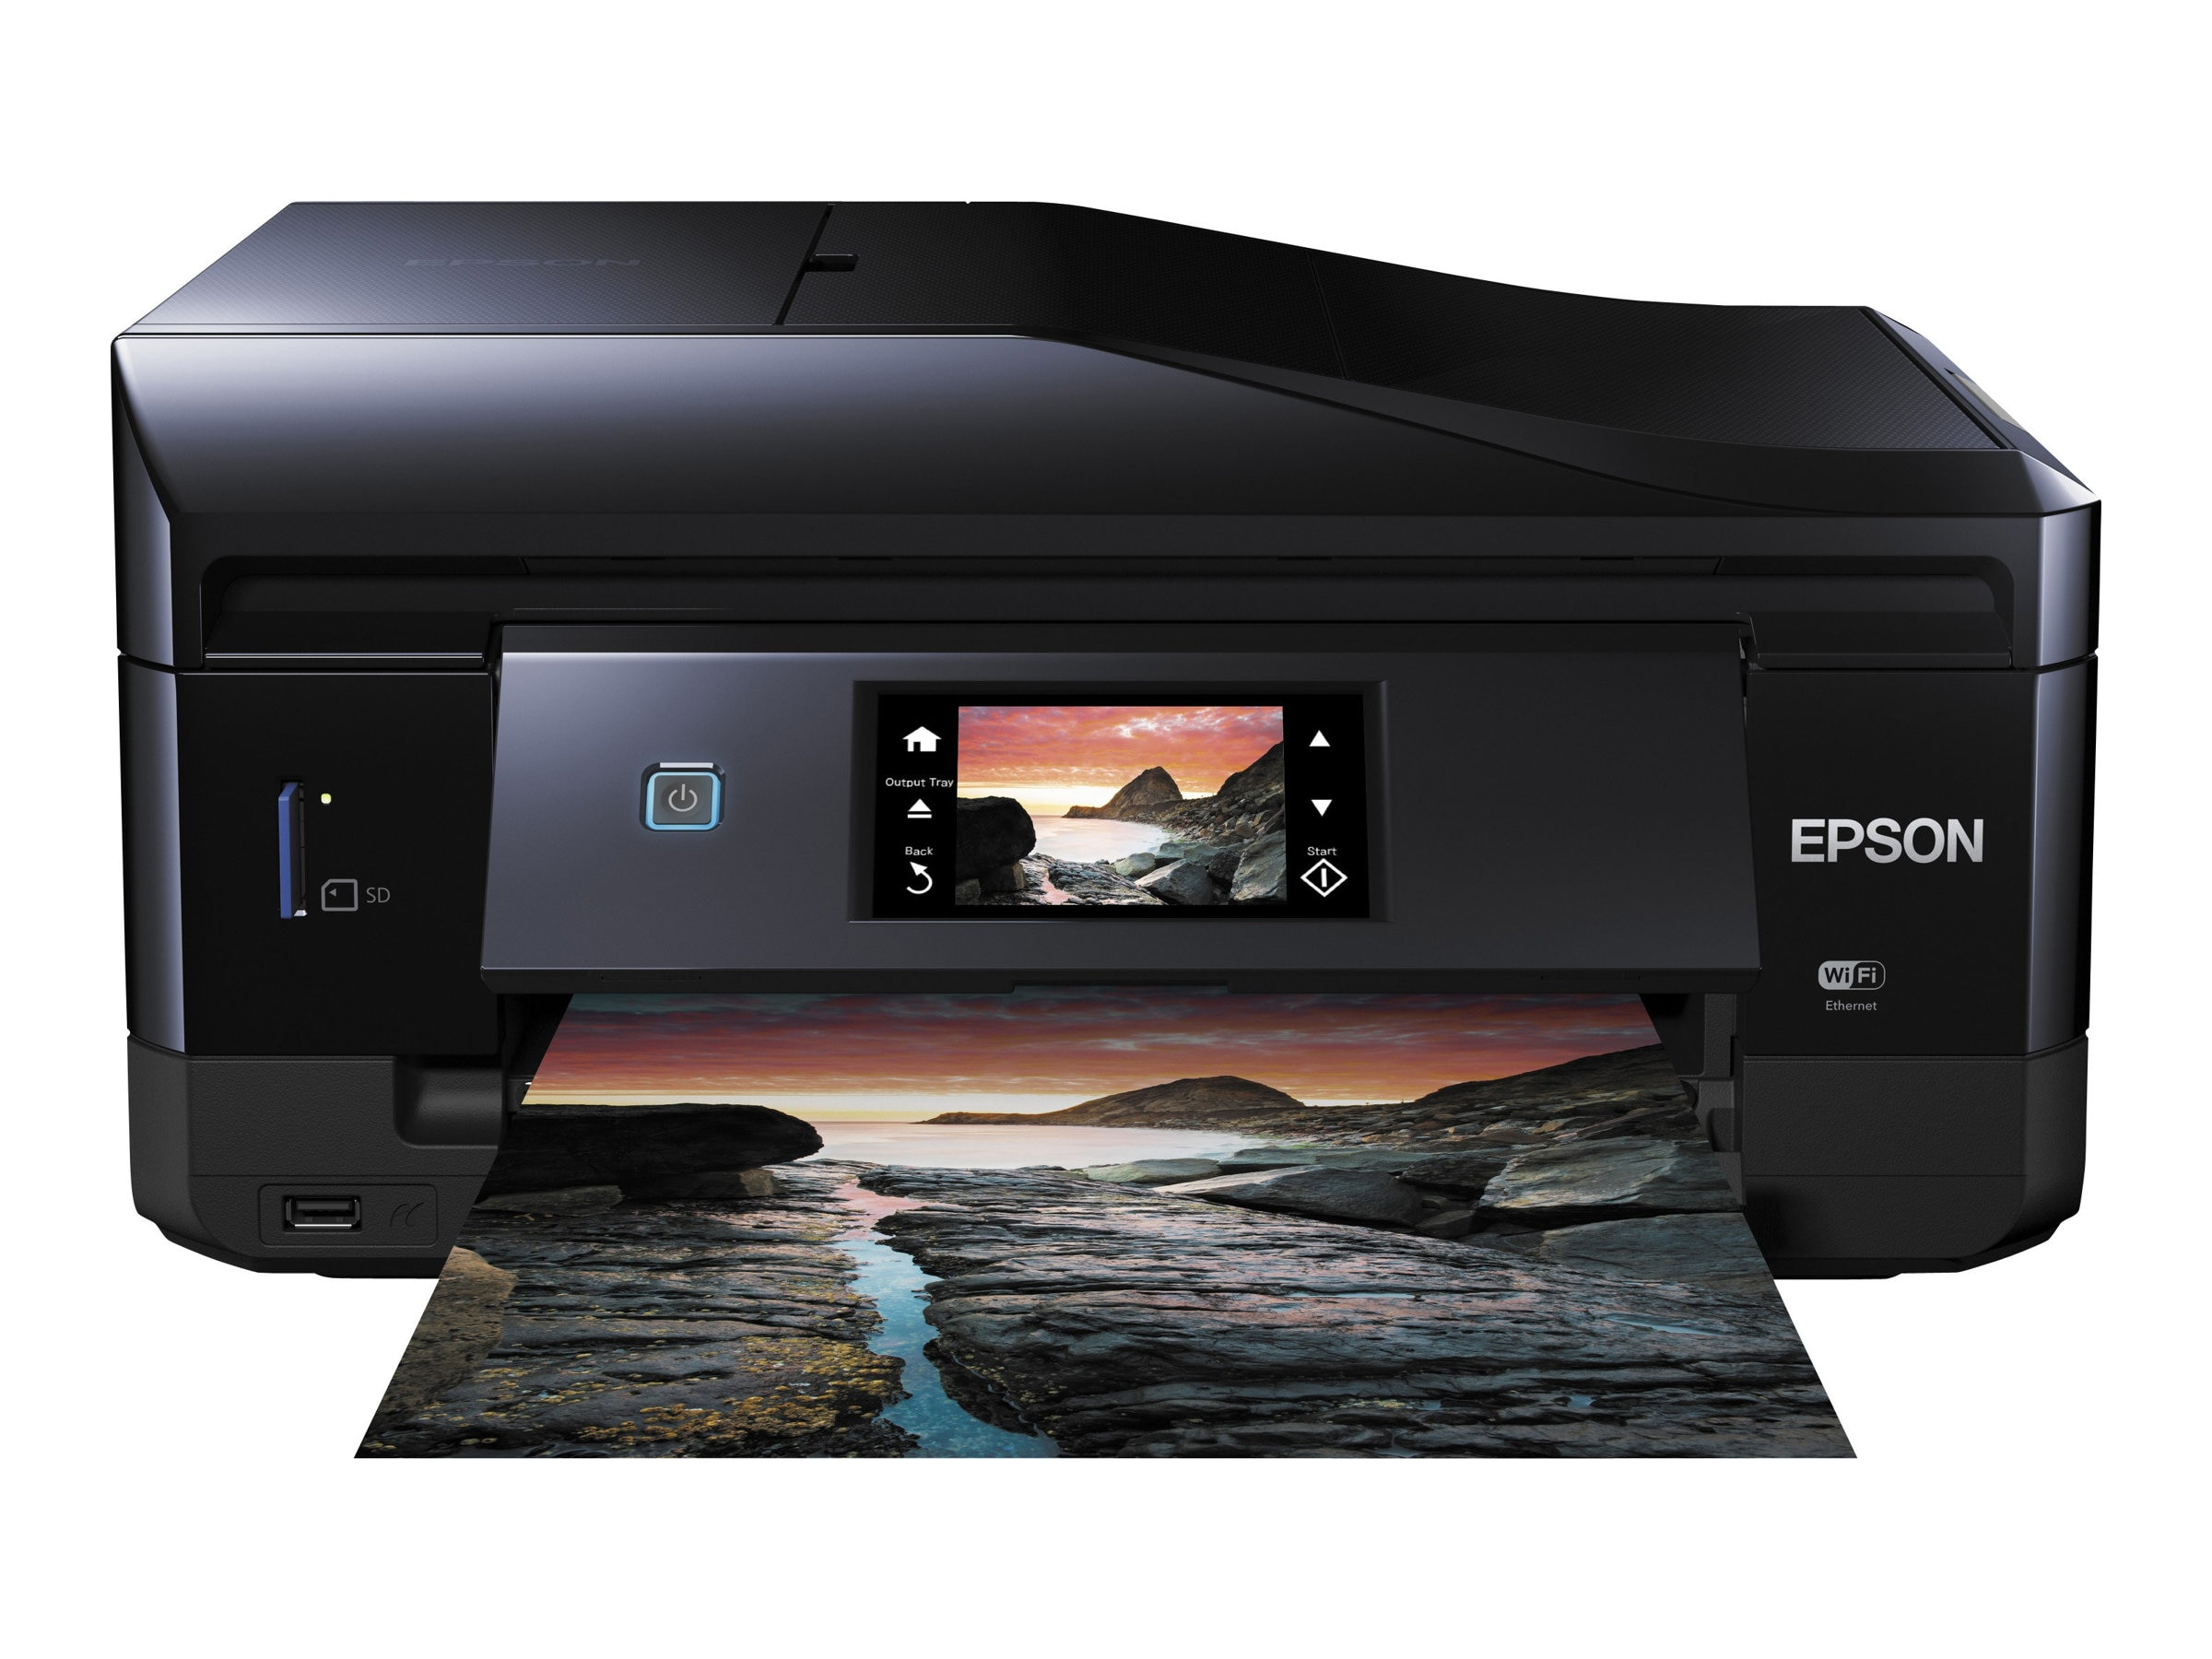 Epson Expression Photo XP-860 All-in-One Printer